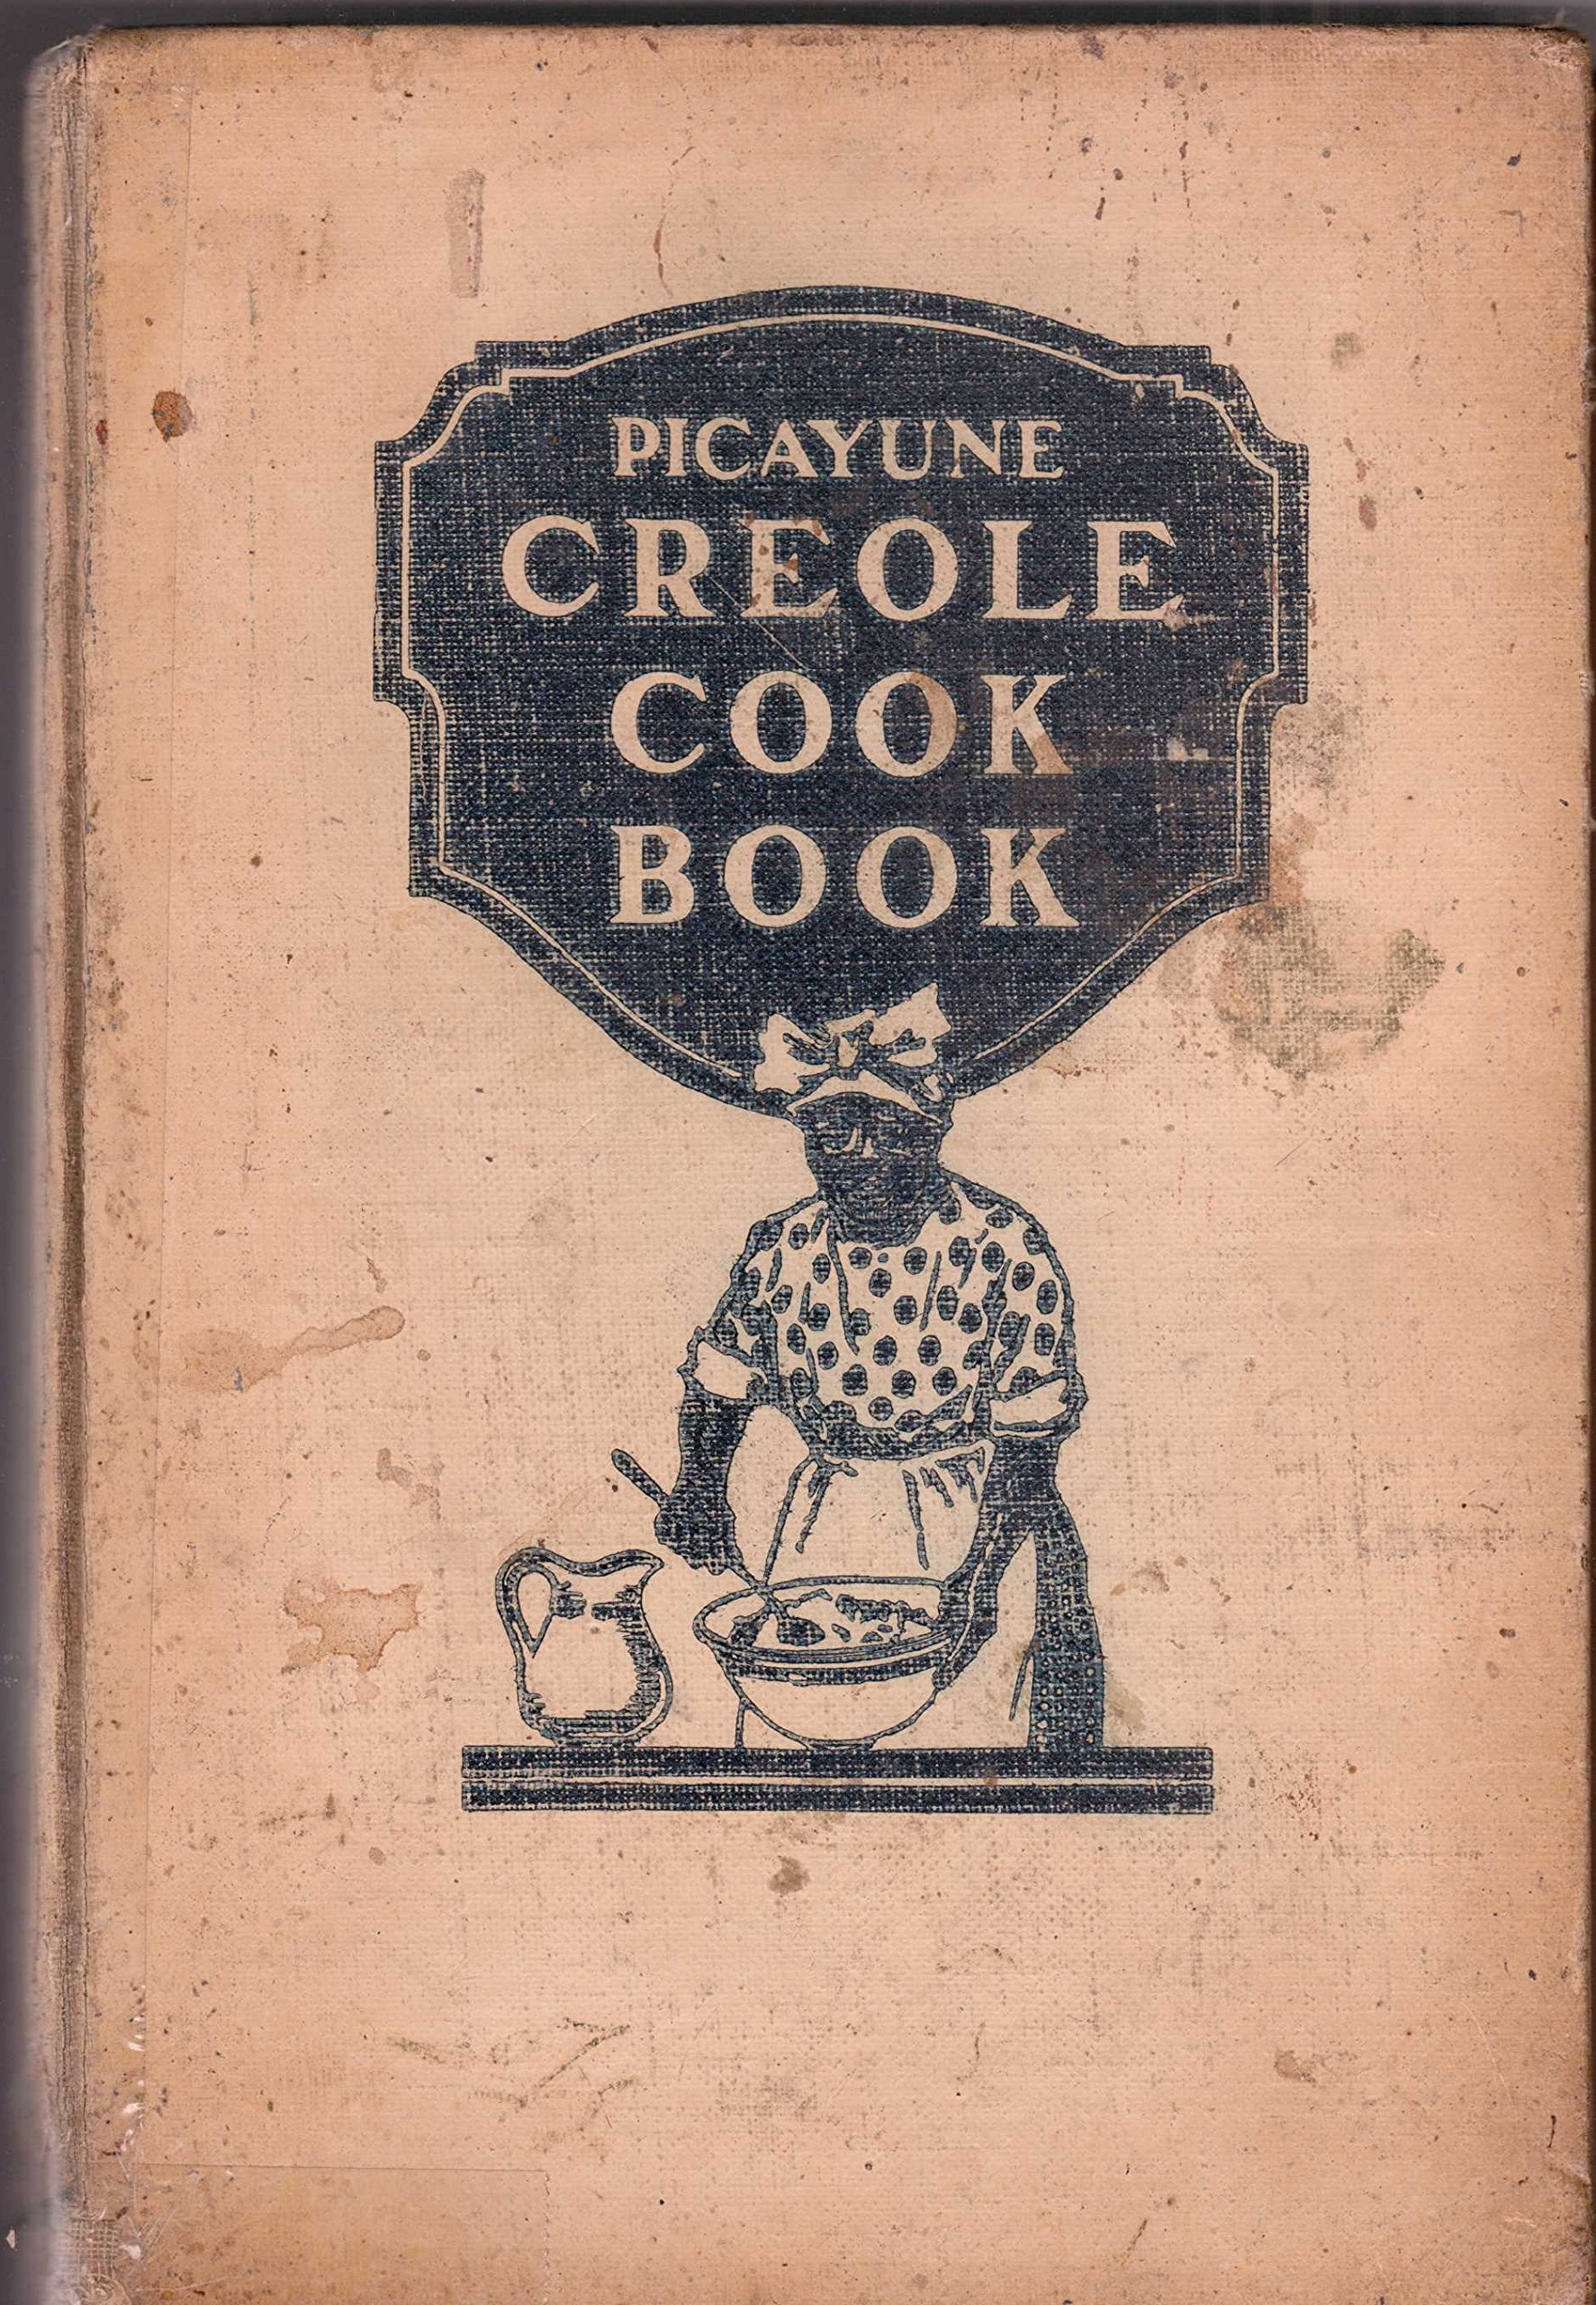 Picayune Creole Cookbook  I am a collector of this wonderful cookbook. It is about hundred years old and I adore it. Happy to share a recipe or two. Personal favorite is Court Bouillon!